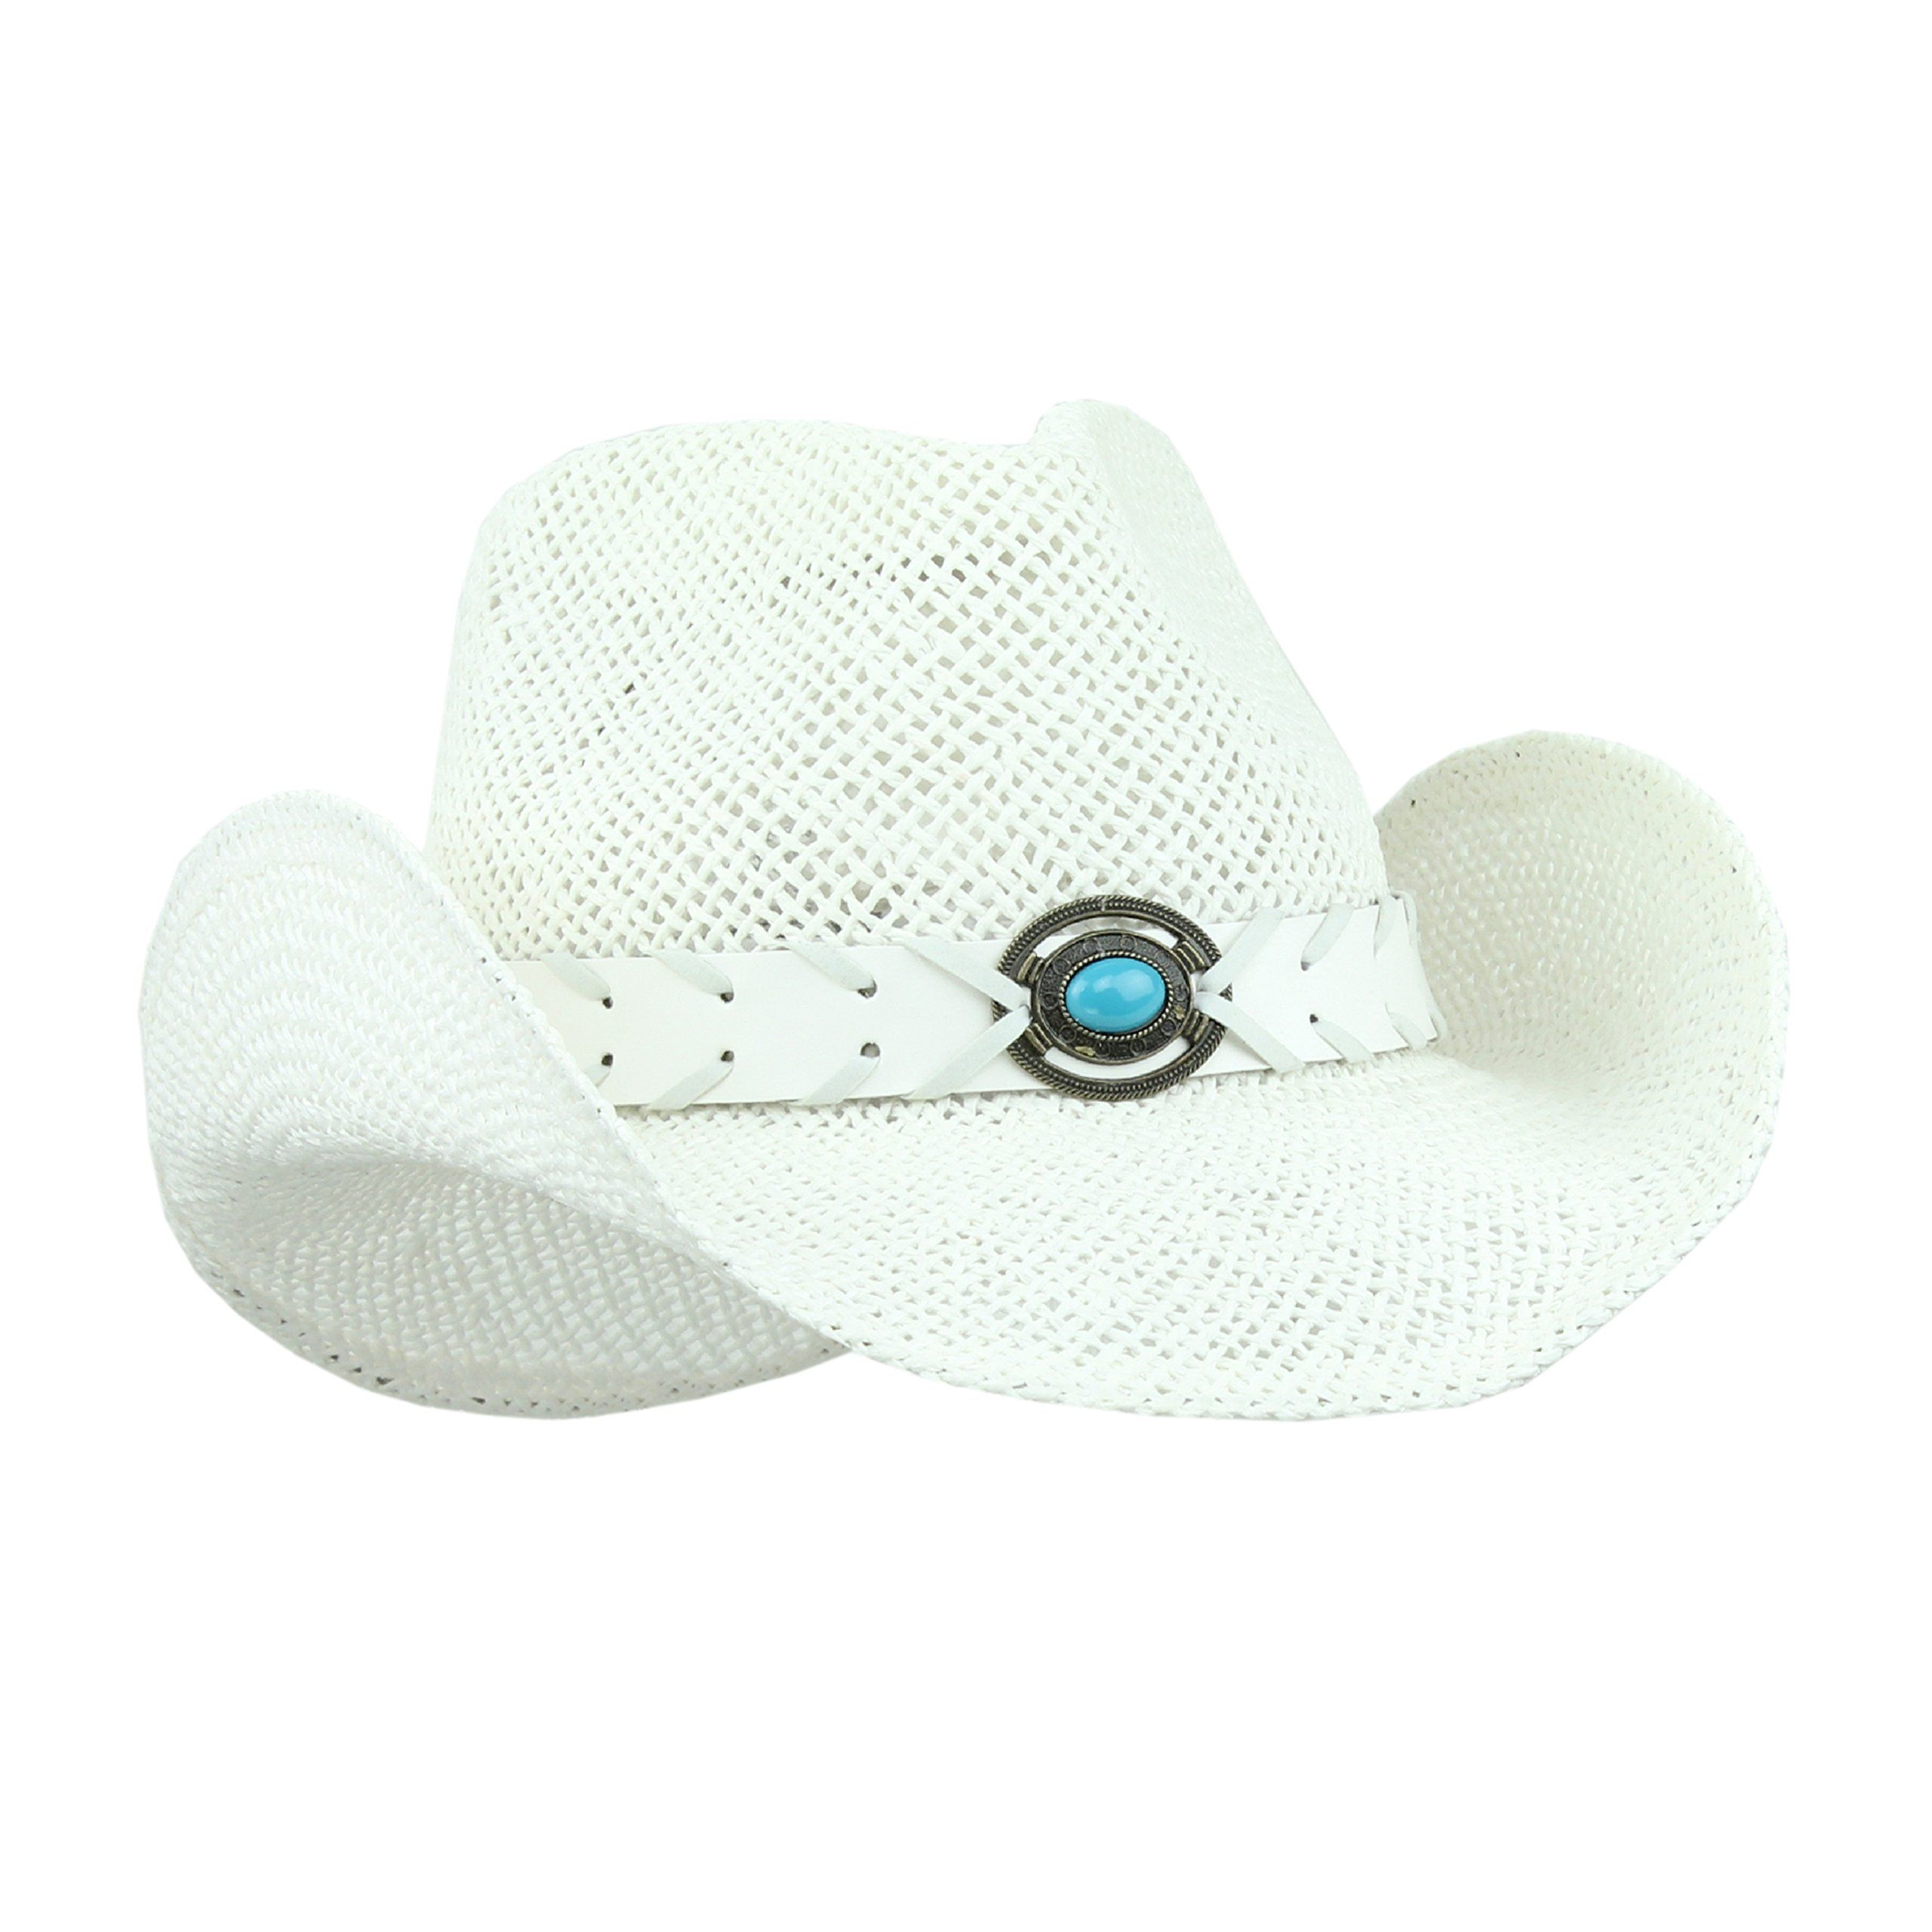 92cc16efad1 Amazon.com  Straw Cowboy Hat for Women with Faux Leather Band and Shapeable  Brim (White)  Sports   Outdoors